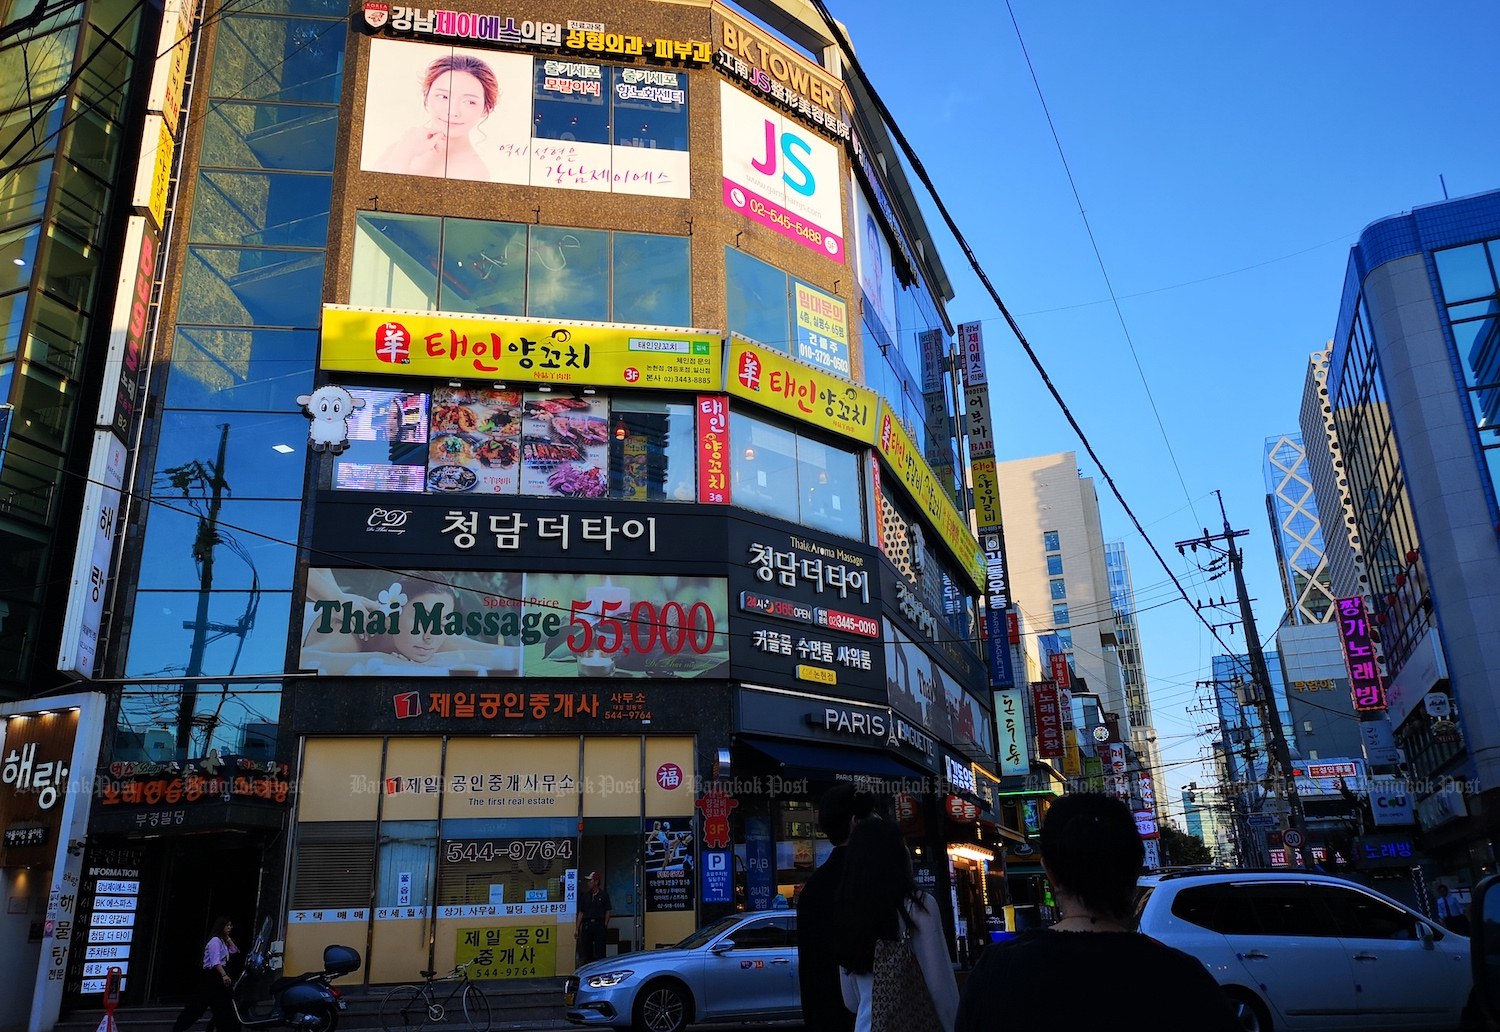 There are at least eight Thai massage shops in the Gangnam district of Seoul. Massage is one of the common jobs that illegal Thai workers take up in South Korea. (Post File Photo)